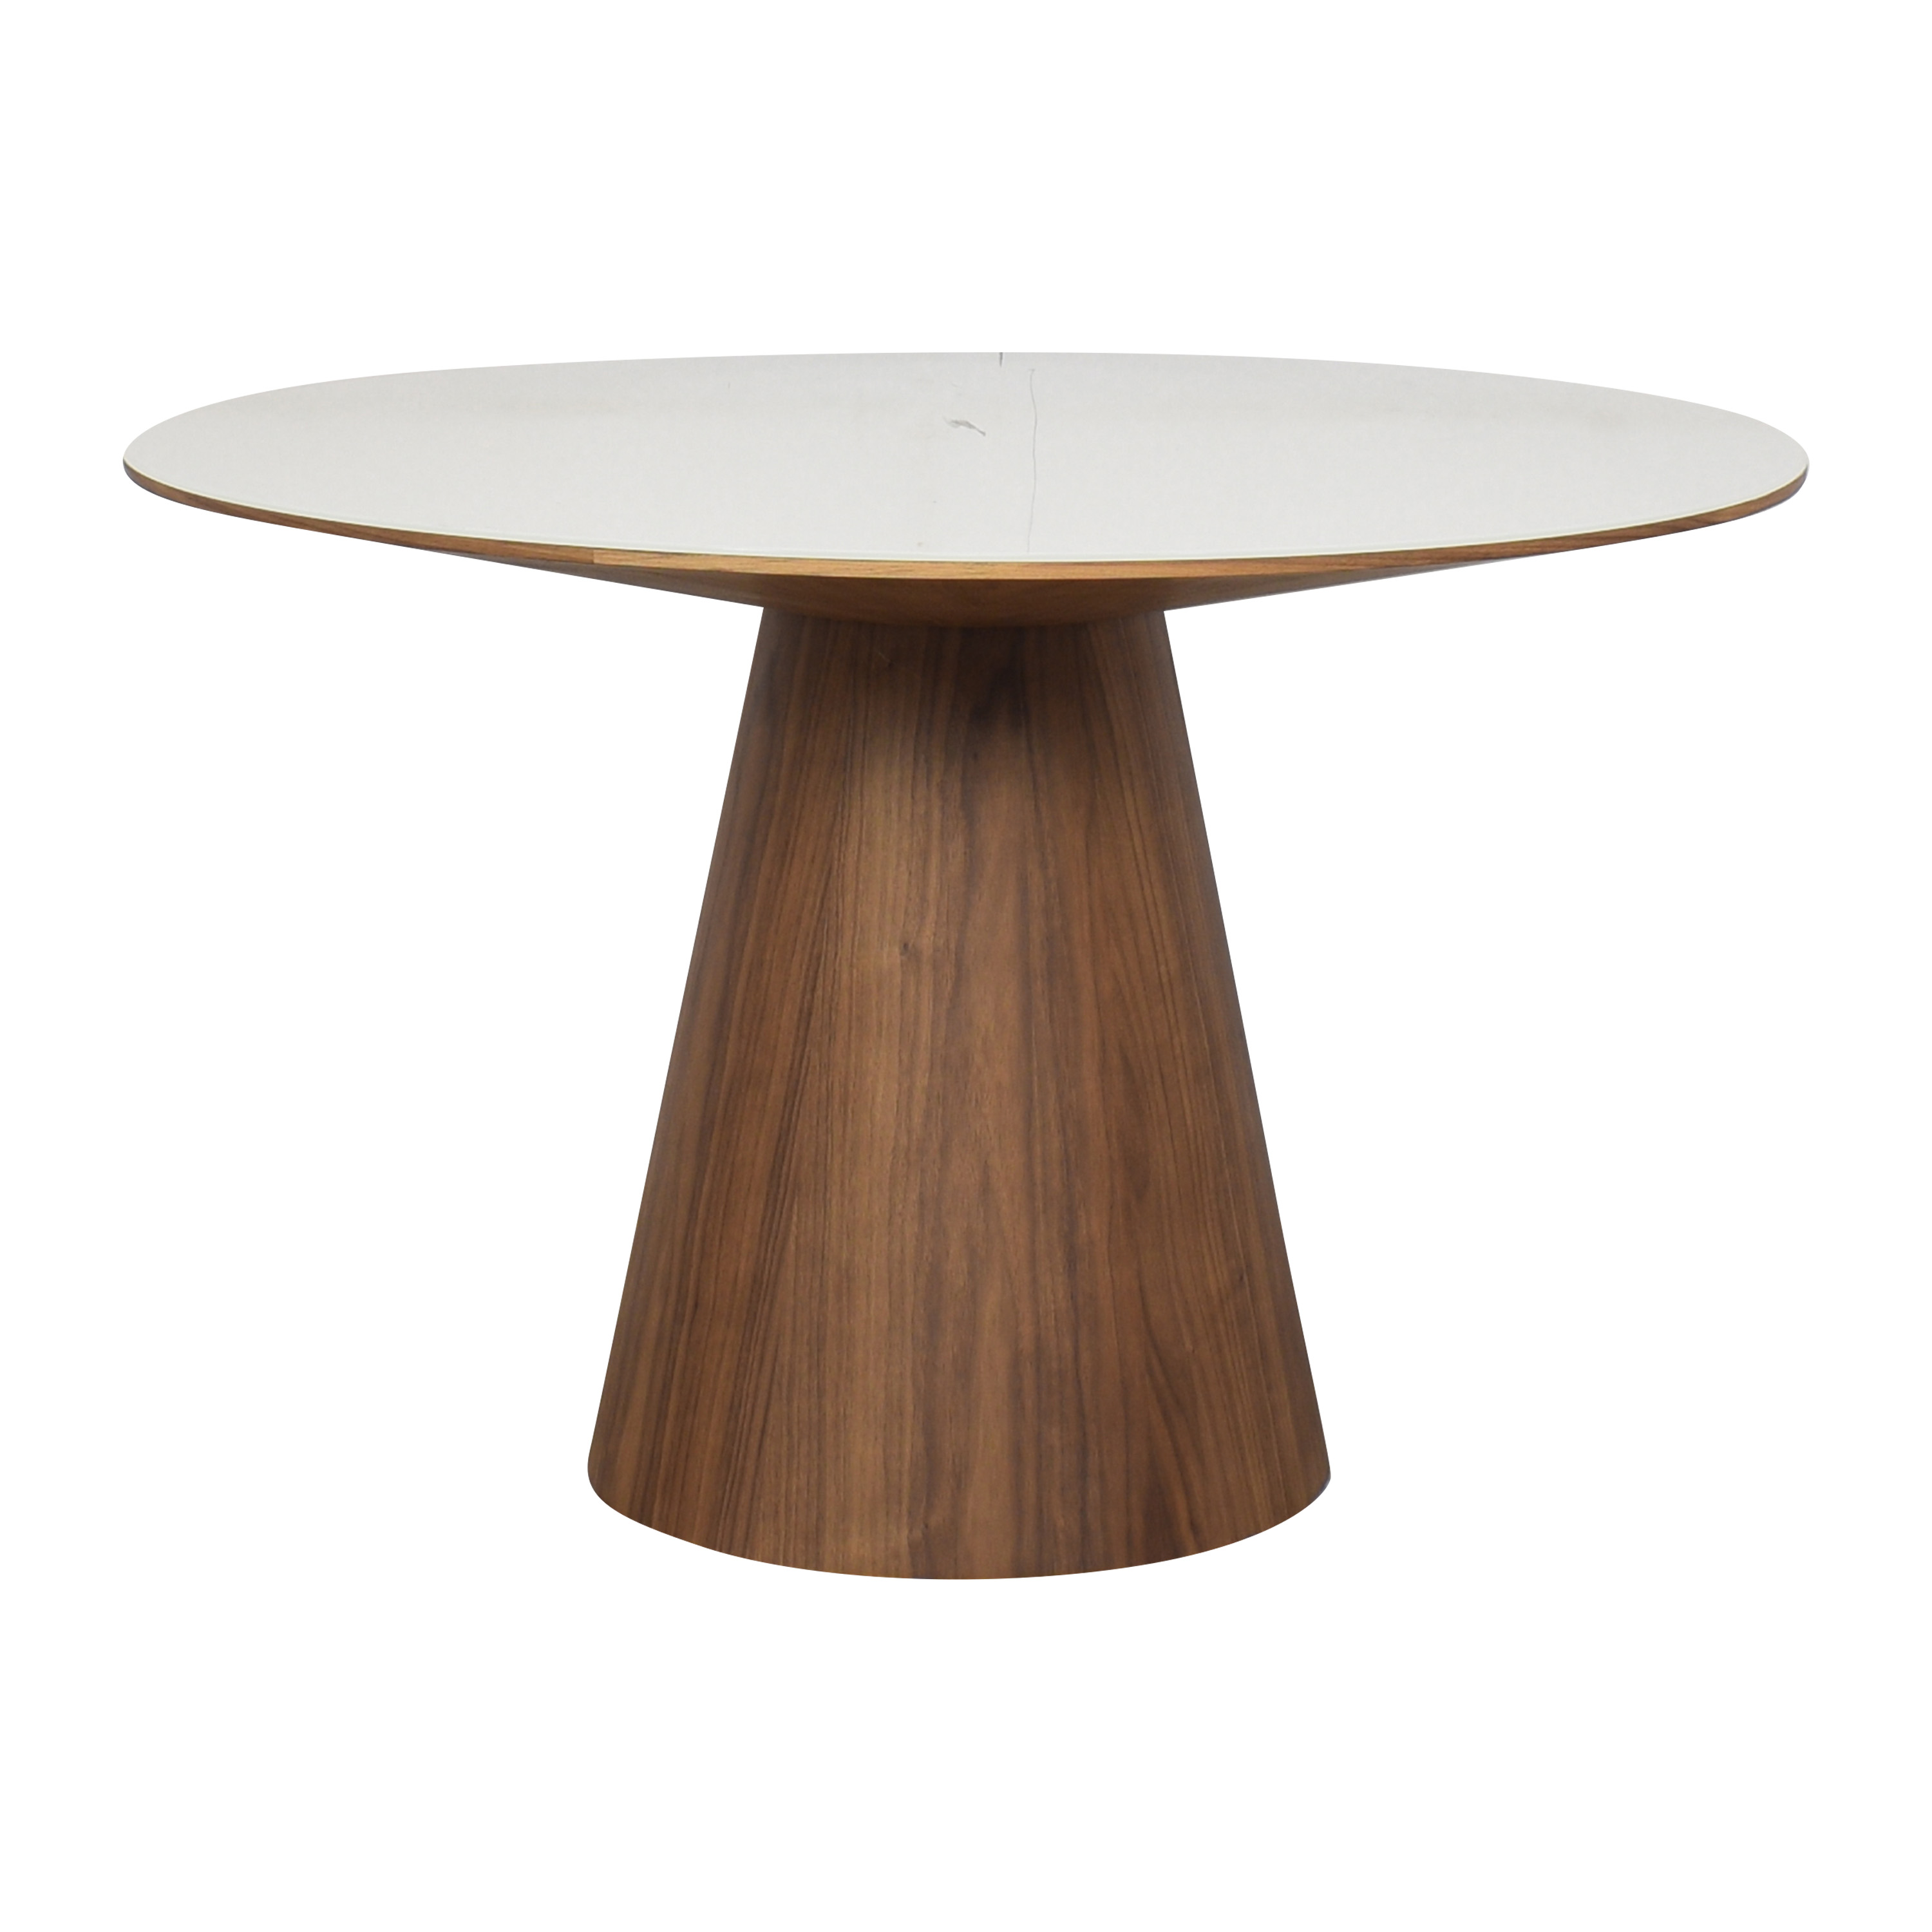 shop Rove Concepts Rove Concepts Winston Dining Table online